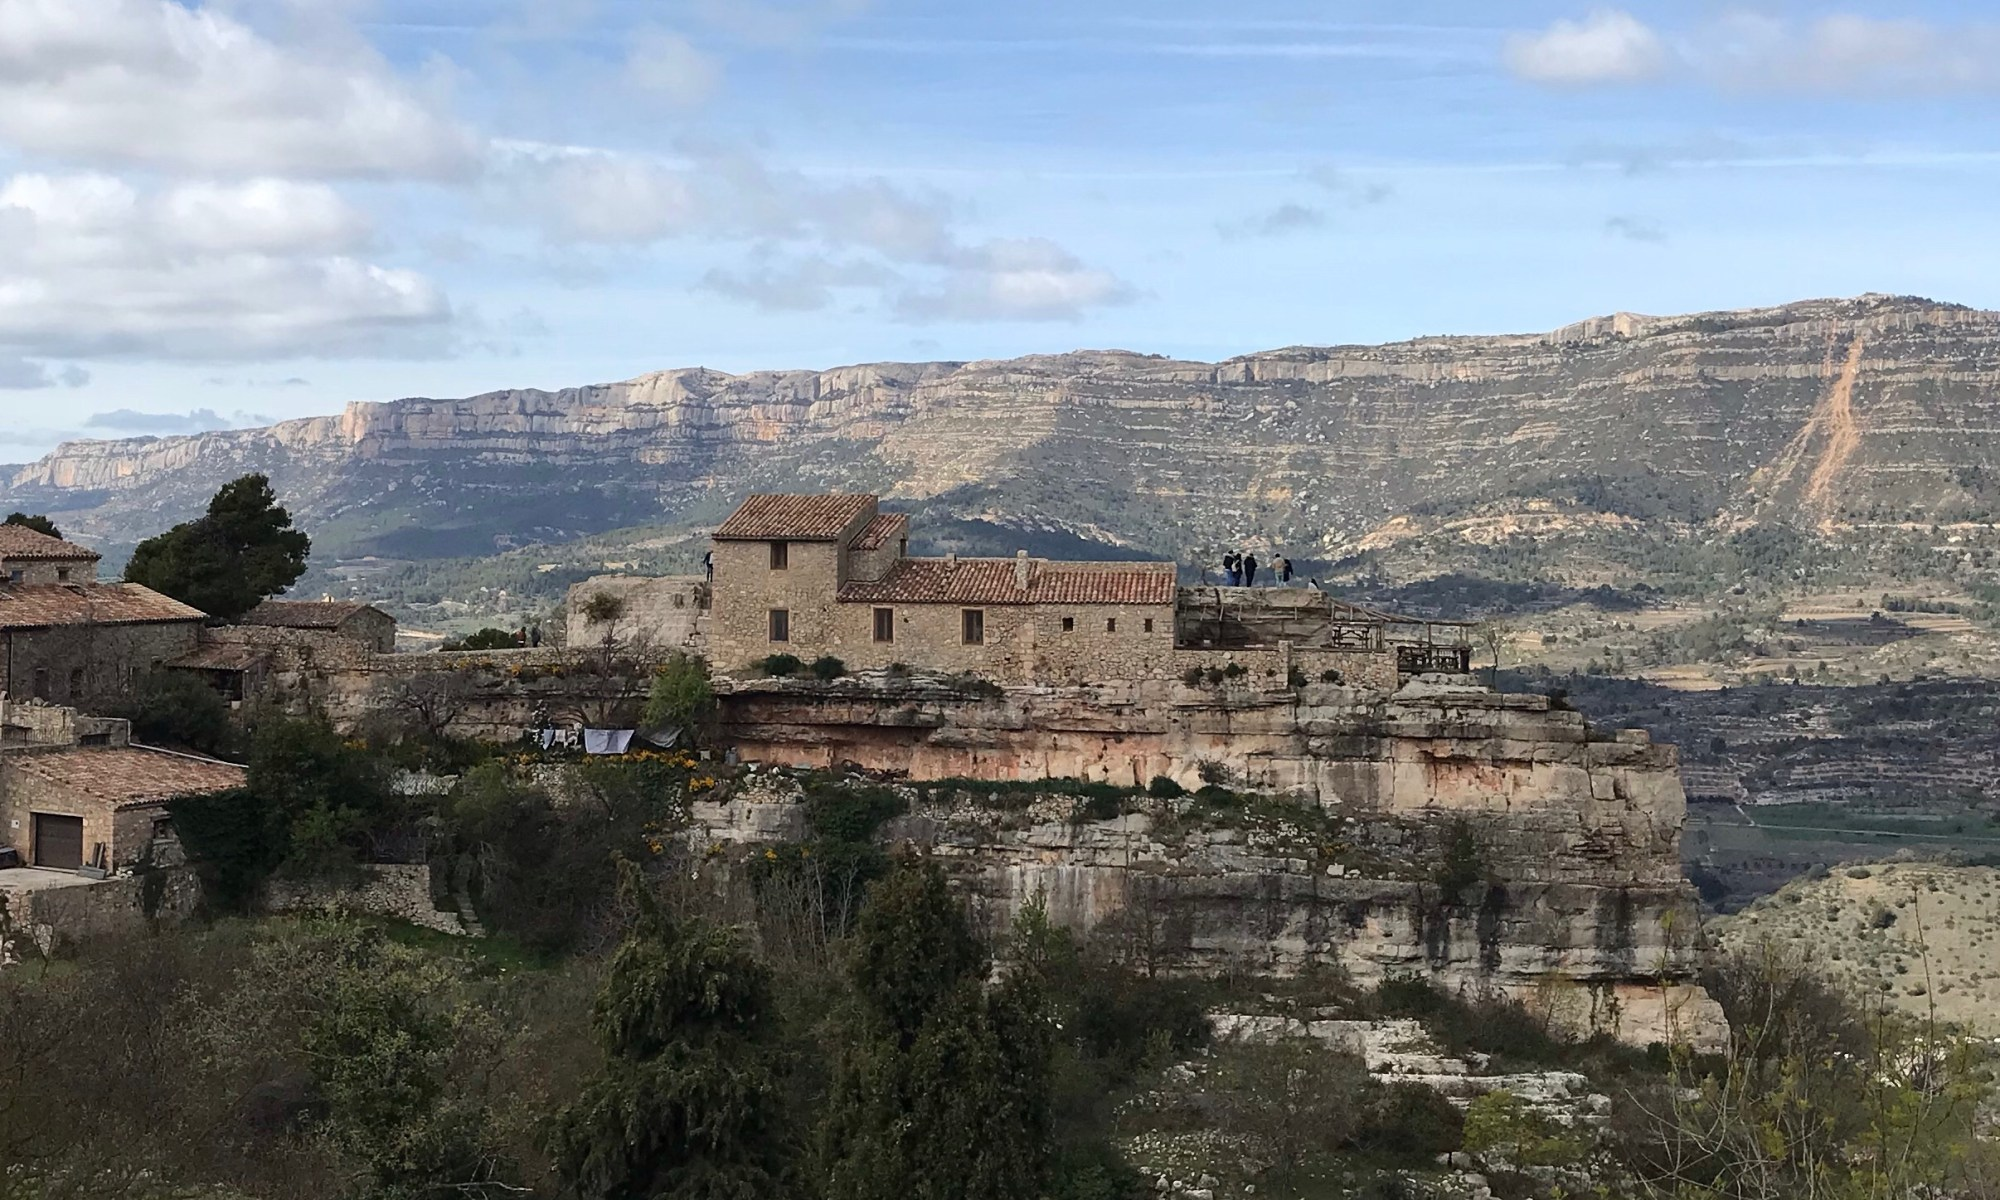 Siurana Besides the Obvious